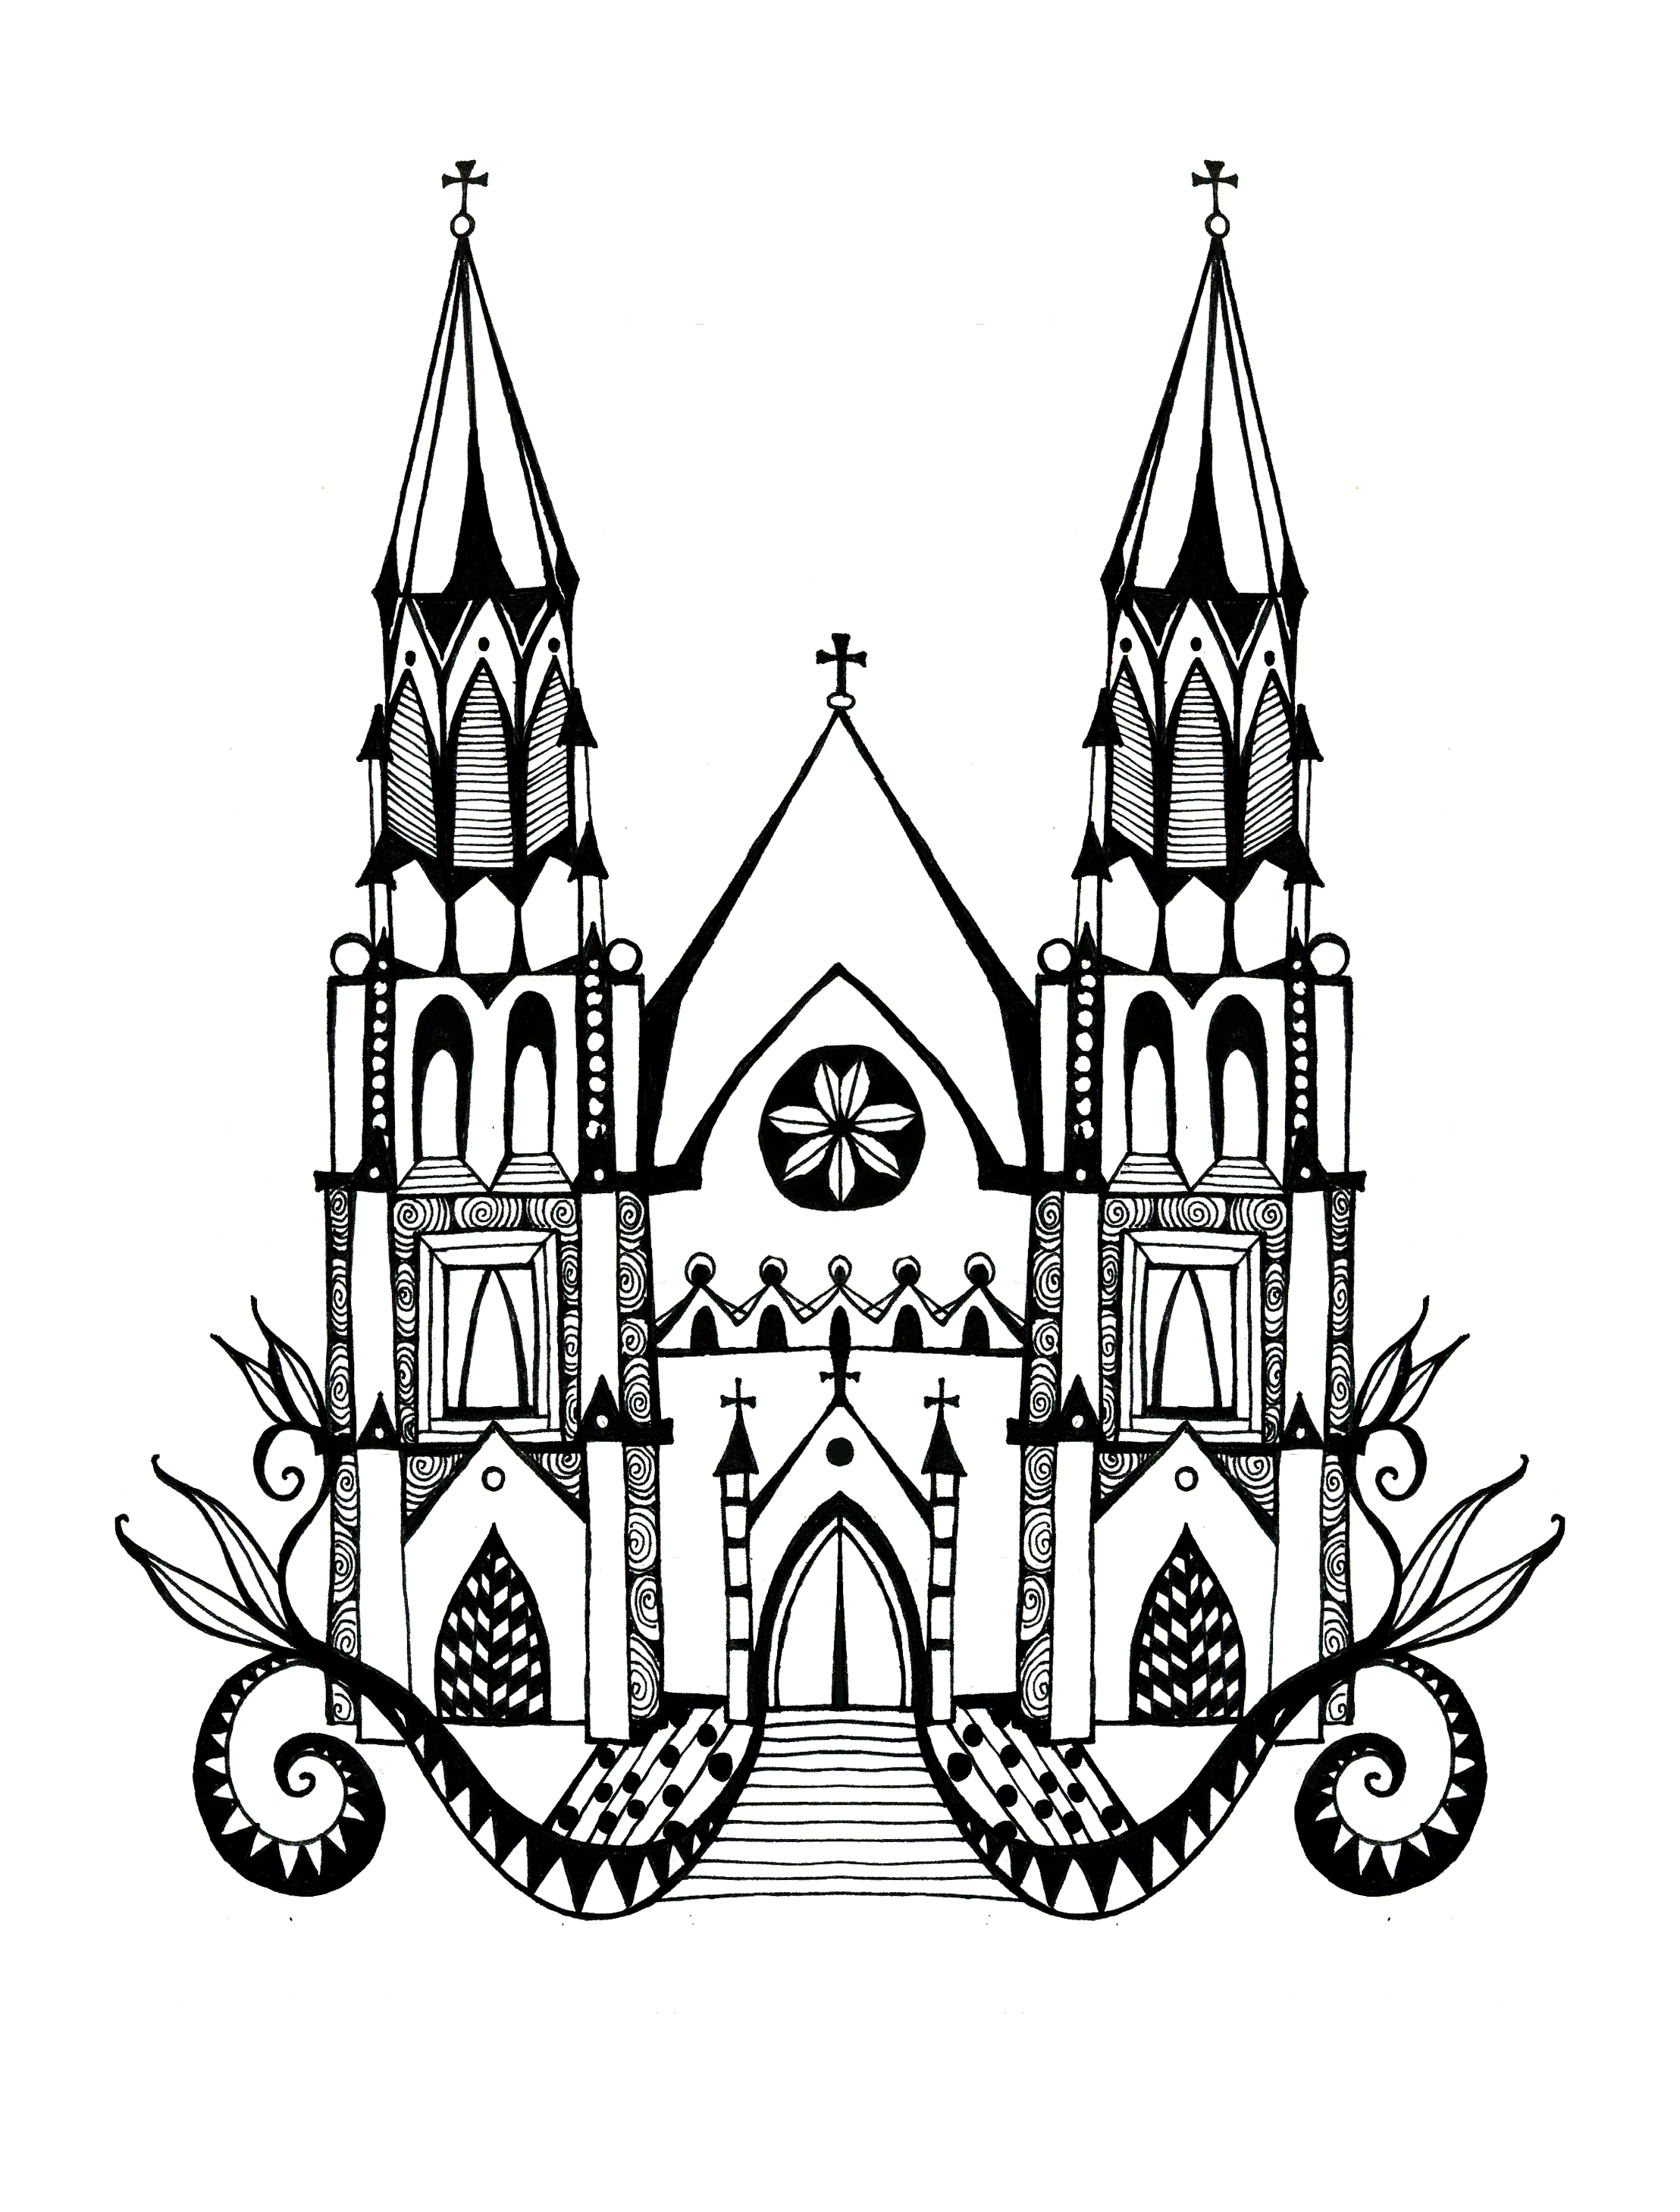 St. John's Cathedral spot illustration